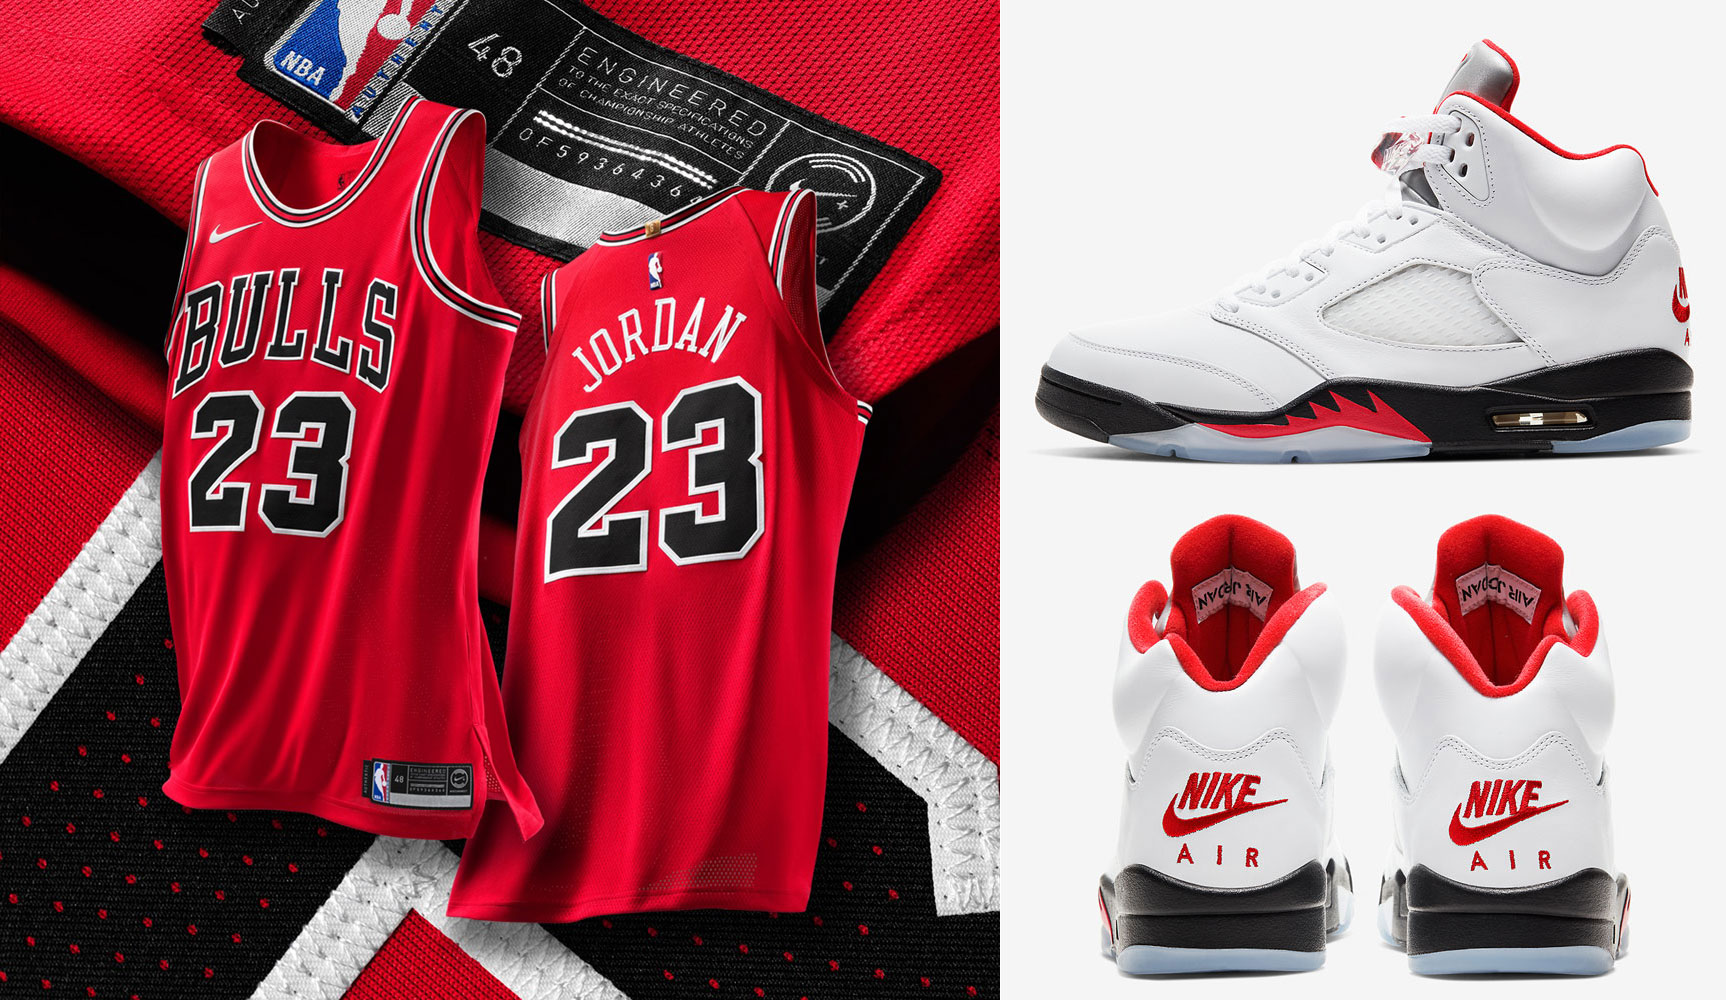 air-jordan-5-fire-red-2020-bulls-clothing-match